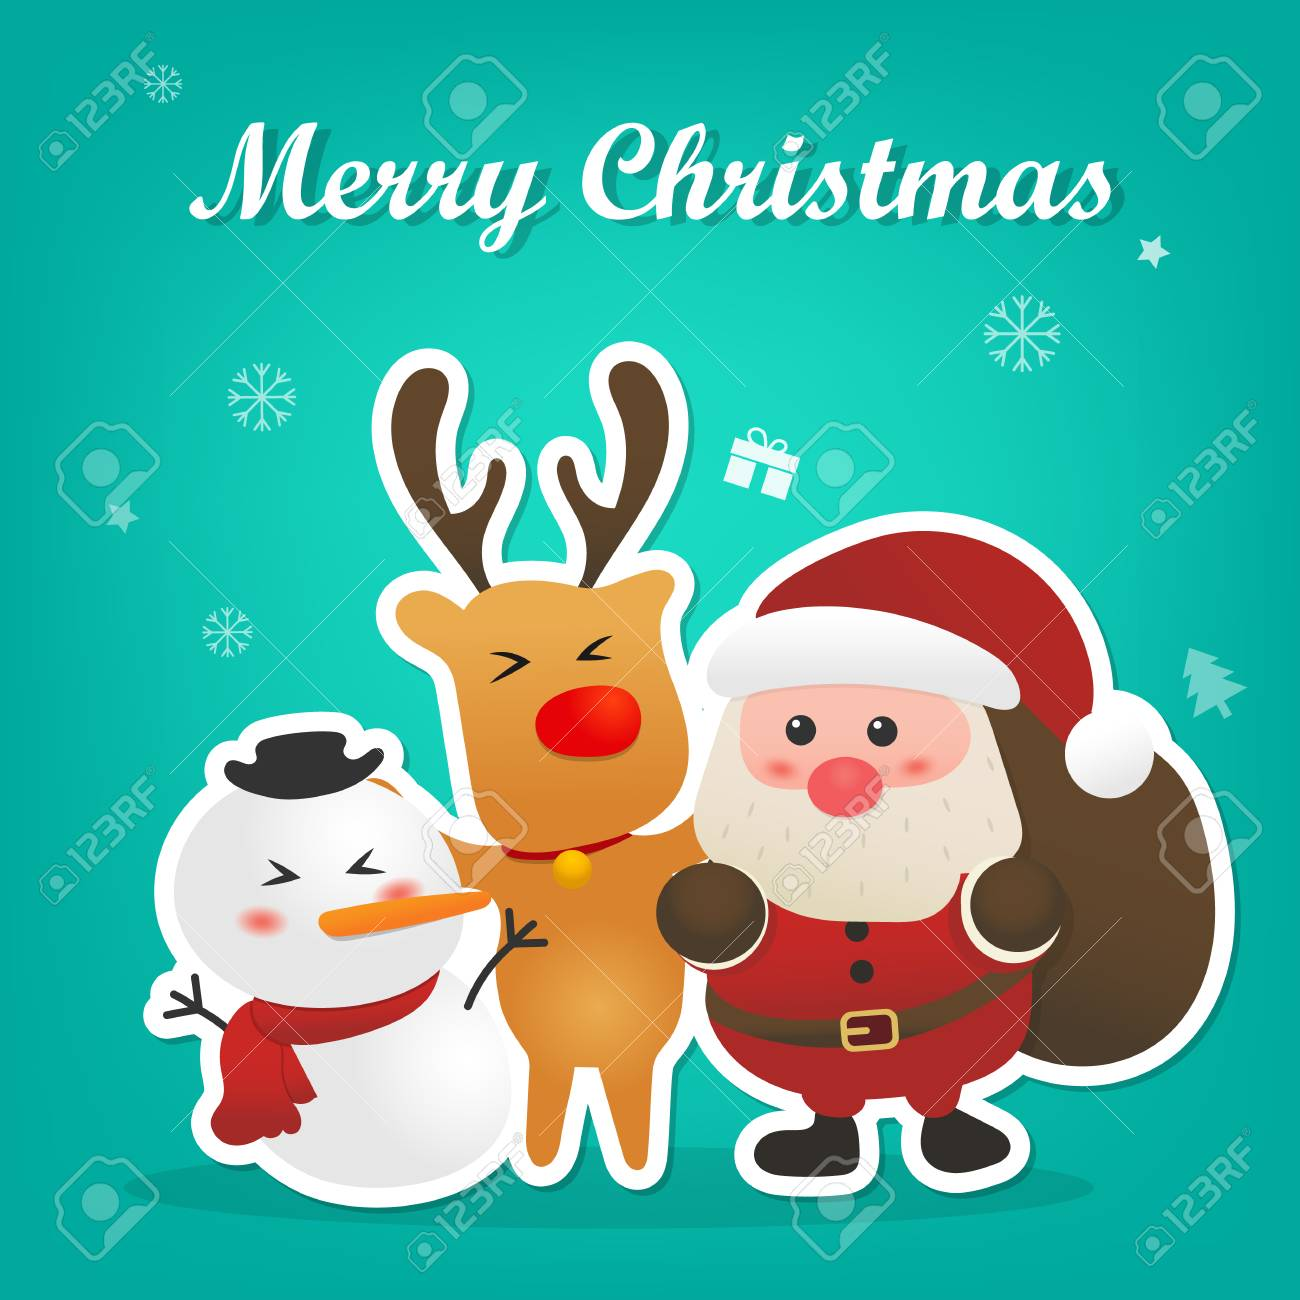 Merry Christmas And Happy New Year With Cute Santa Claus Snowman ...